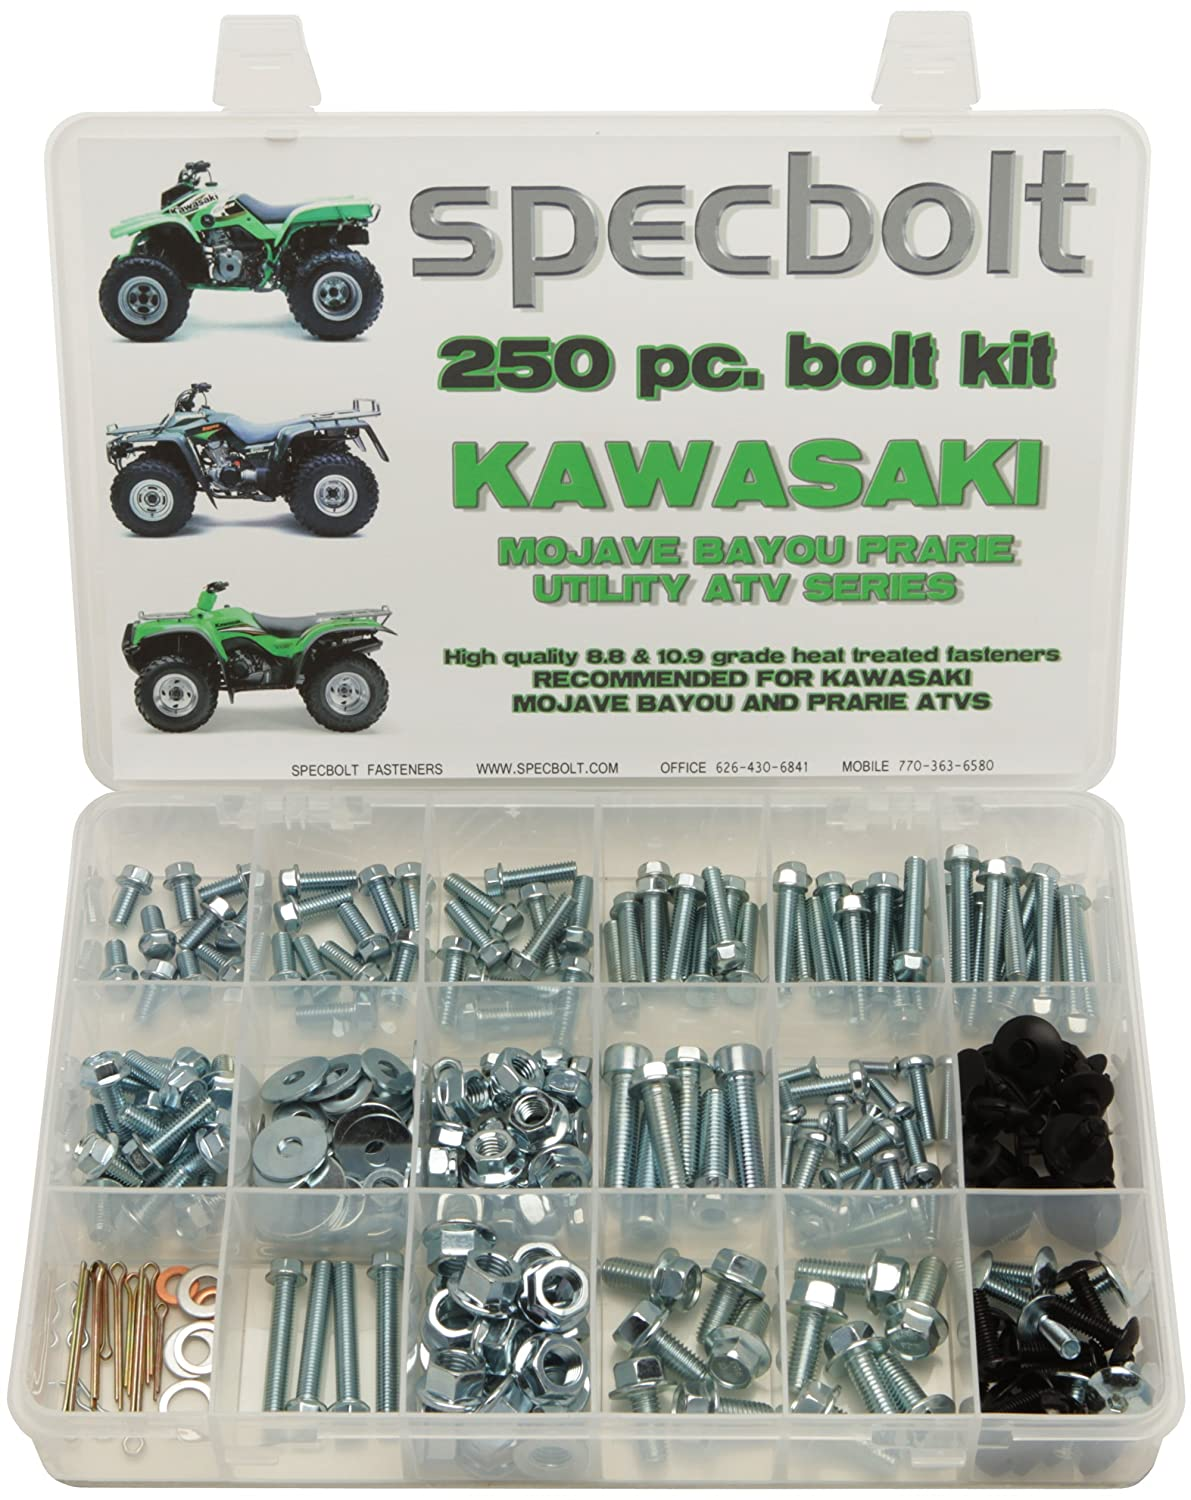 250pc Specbolt Kawasaki Utility ATV Bolt Kit for KLT KSF KLF KEF KVF KSV &  KLF models Maintenance & Restoration OEM Spec Fasteners Quad BRUTE FORCE  BAYOU ...